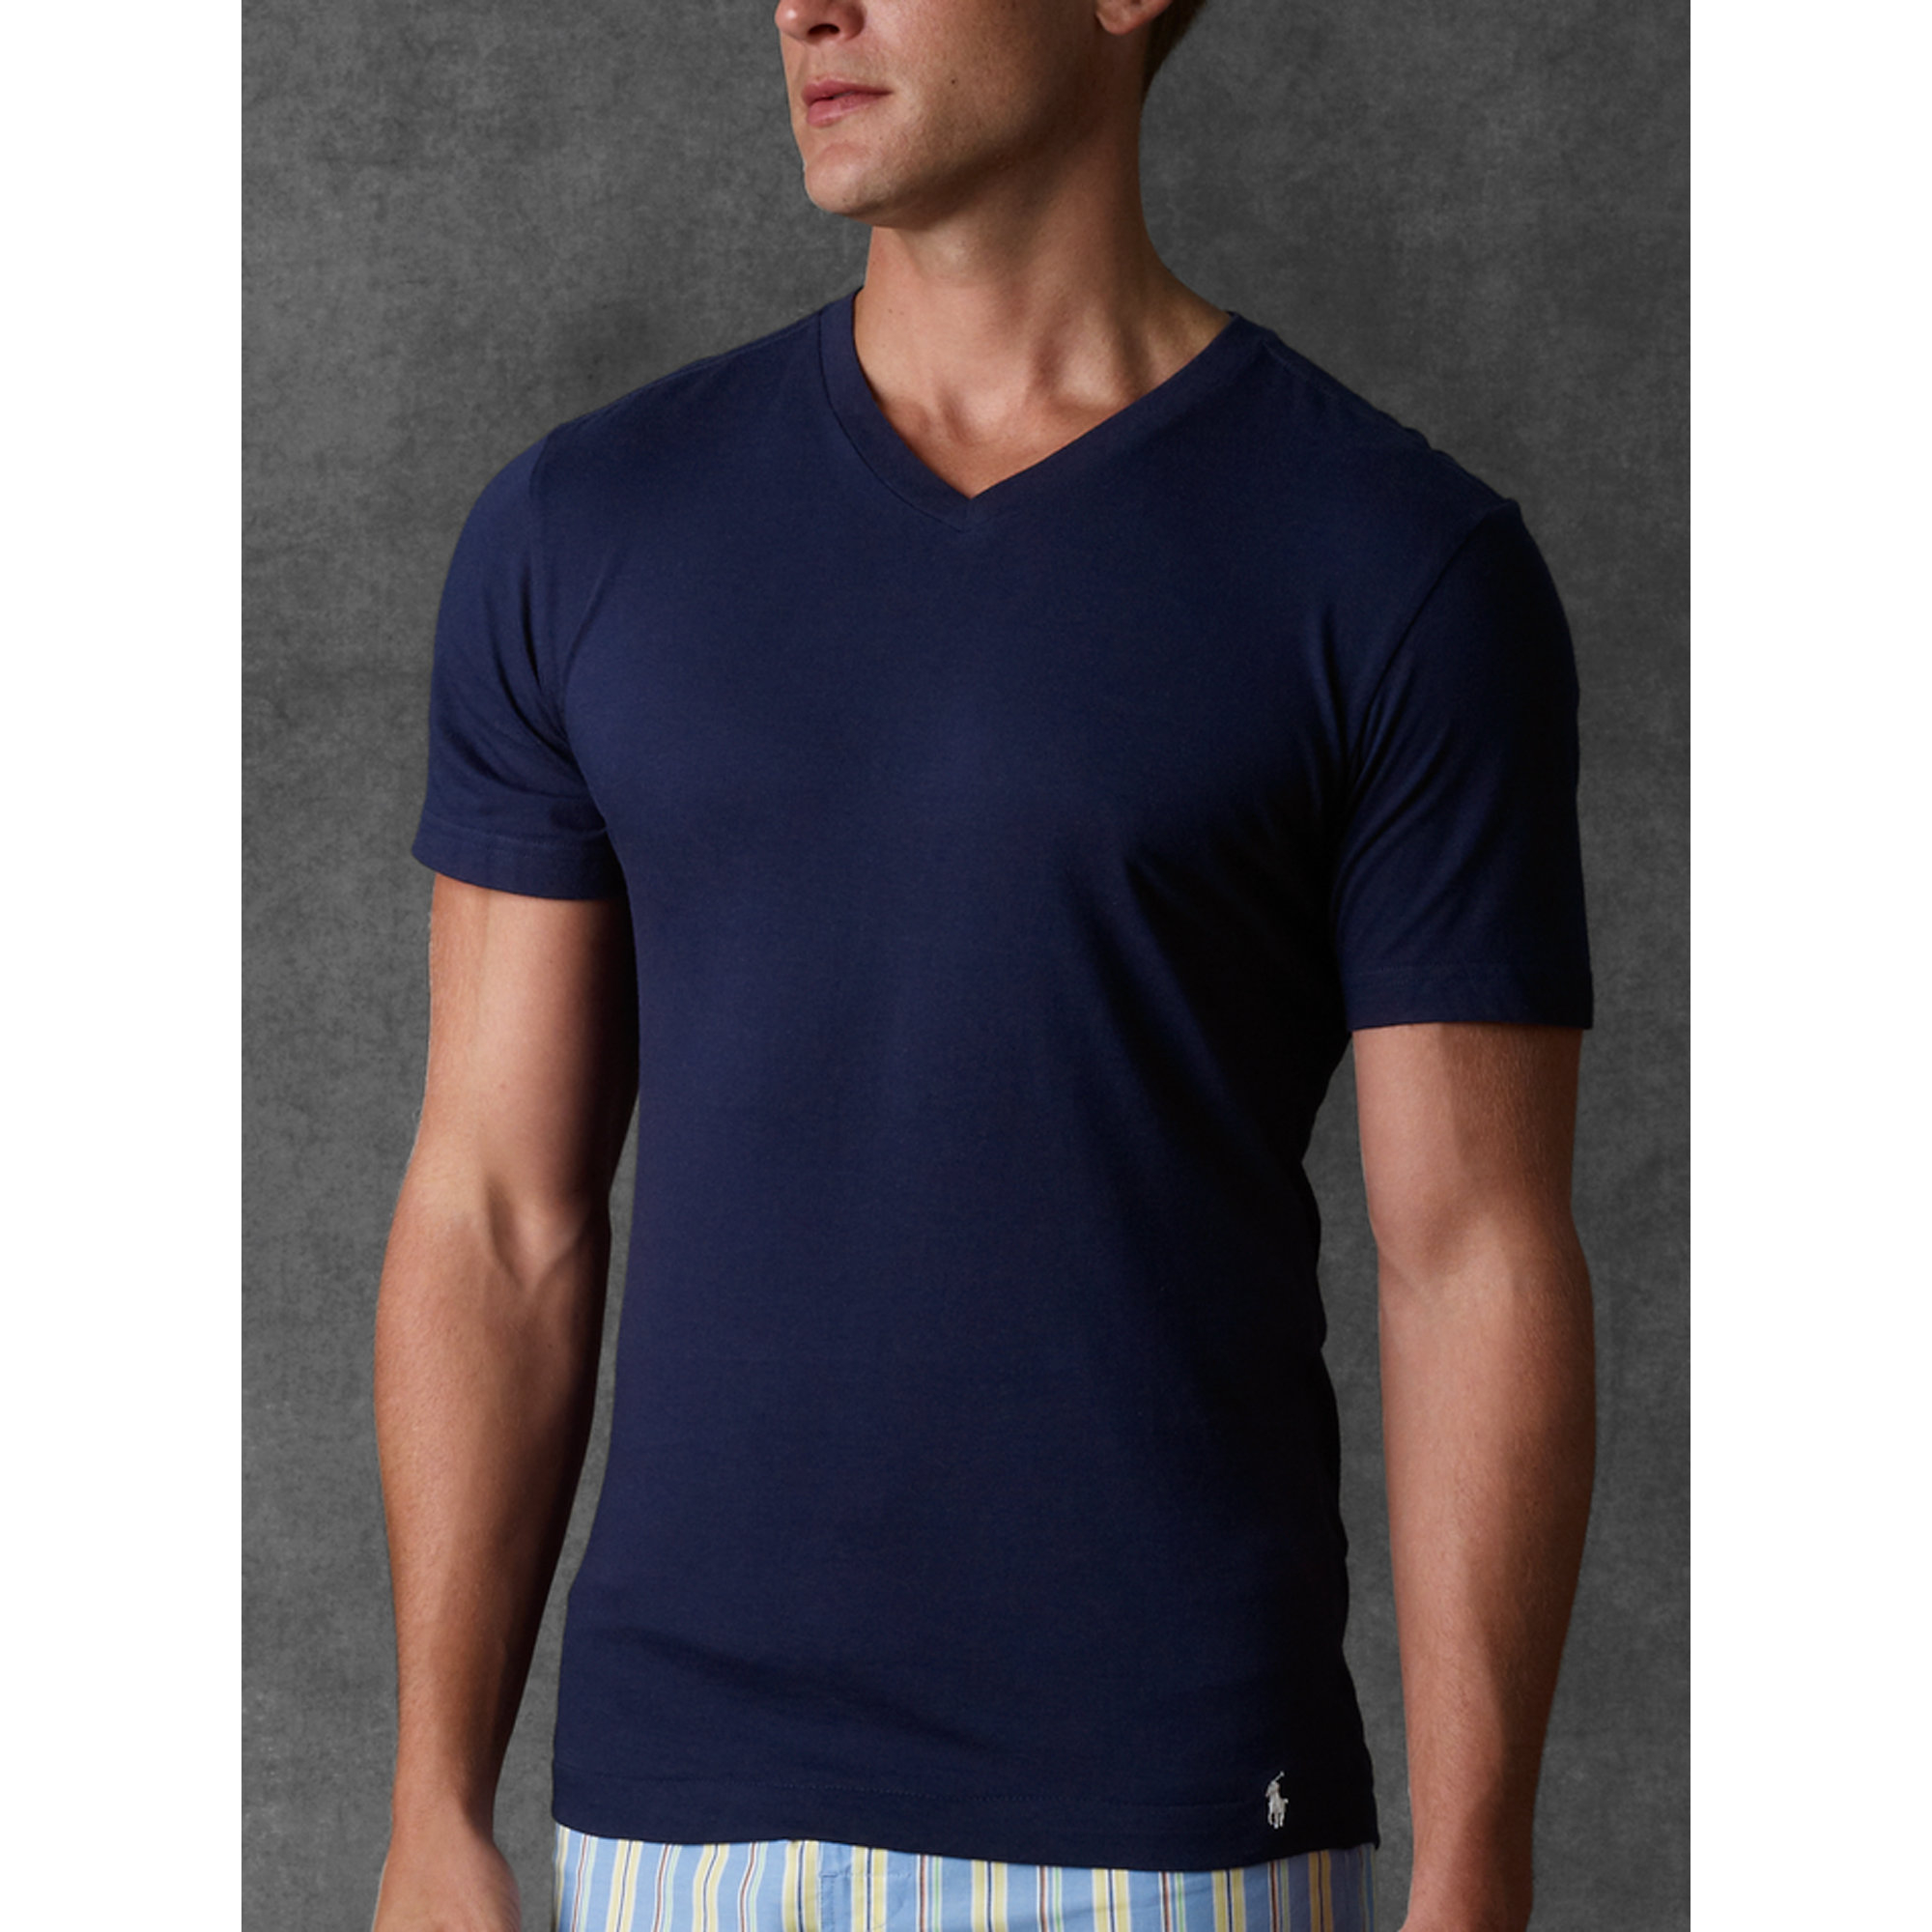 4a4bd9877aa Lyst - Polo Ralph Lauren Slim-fit V-neck Three-pack in Blue for Men